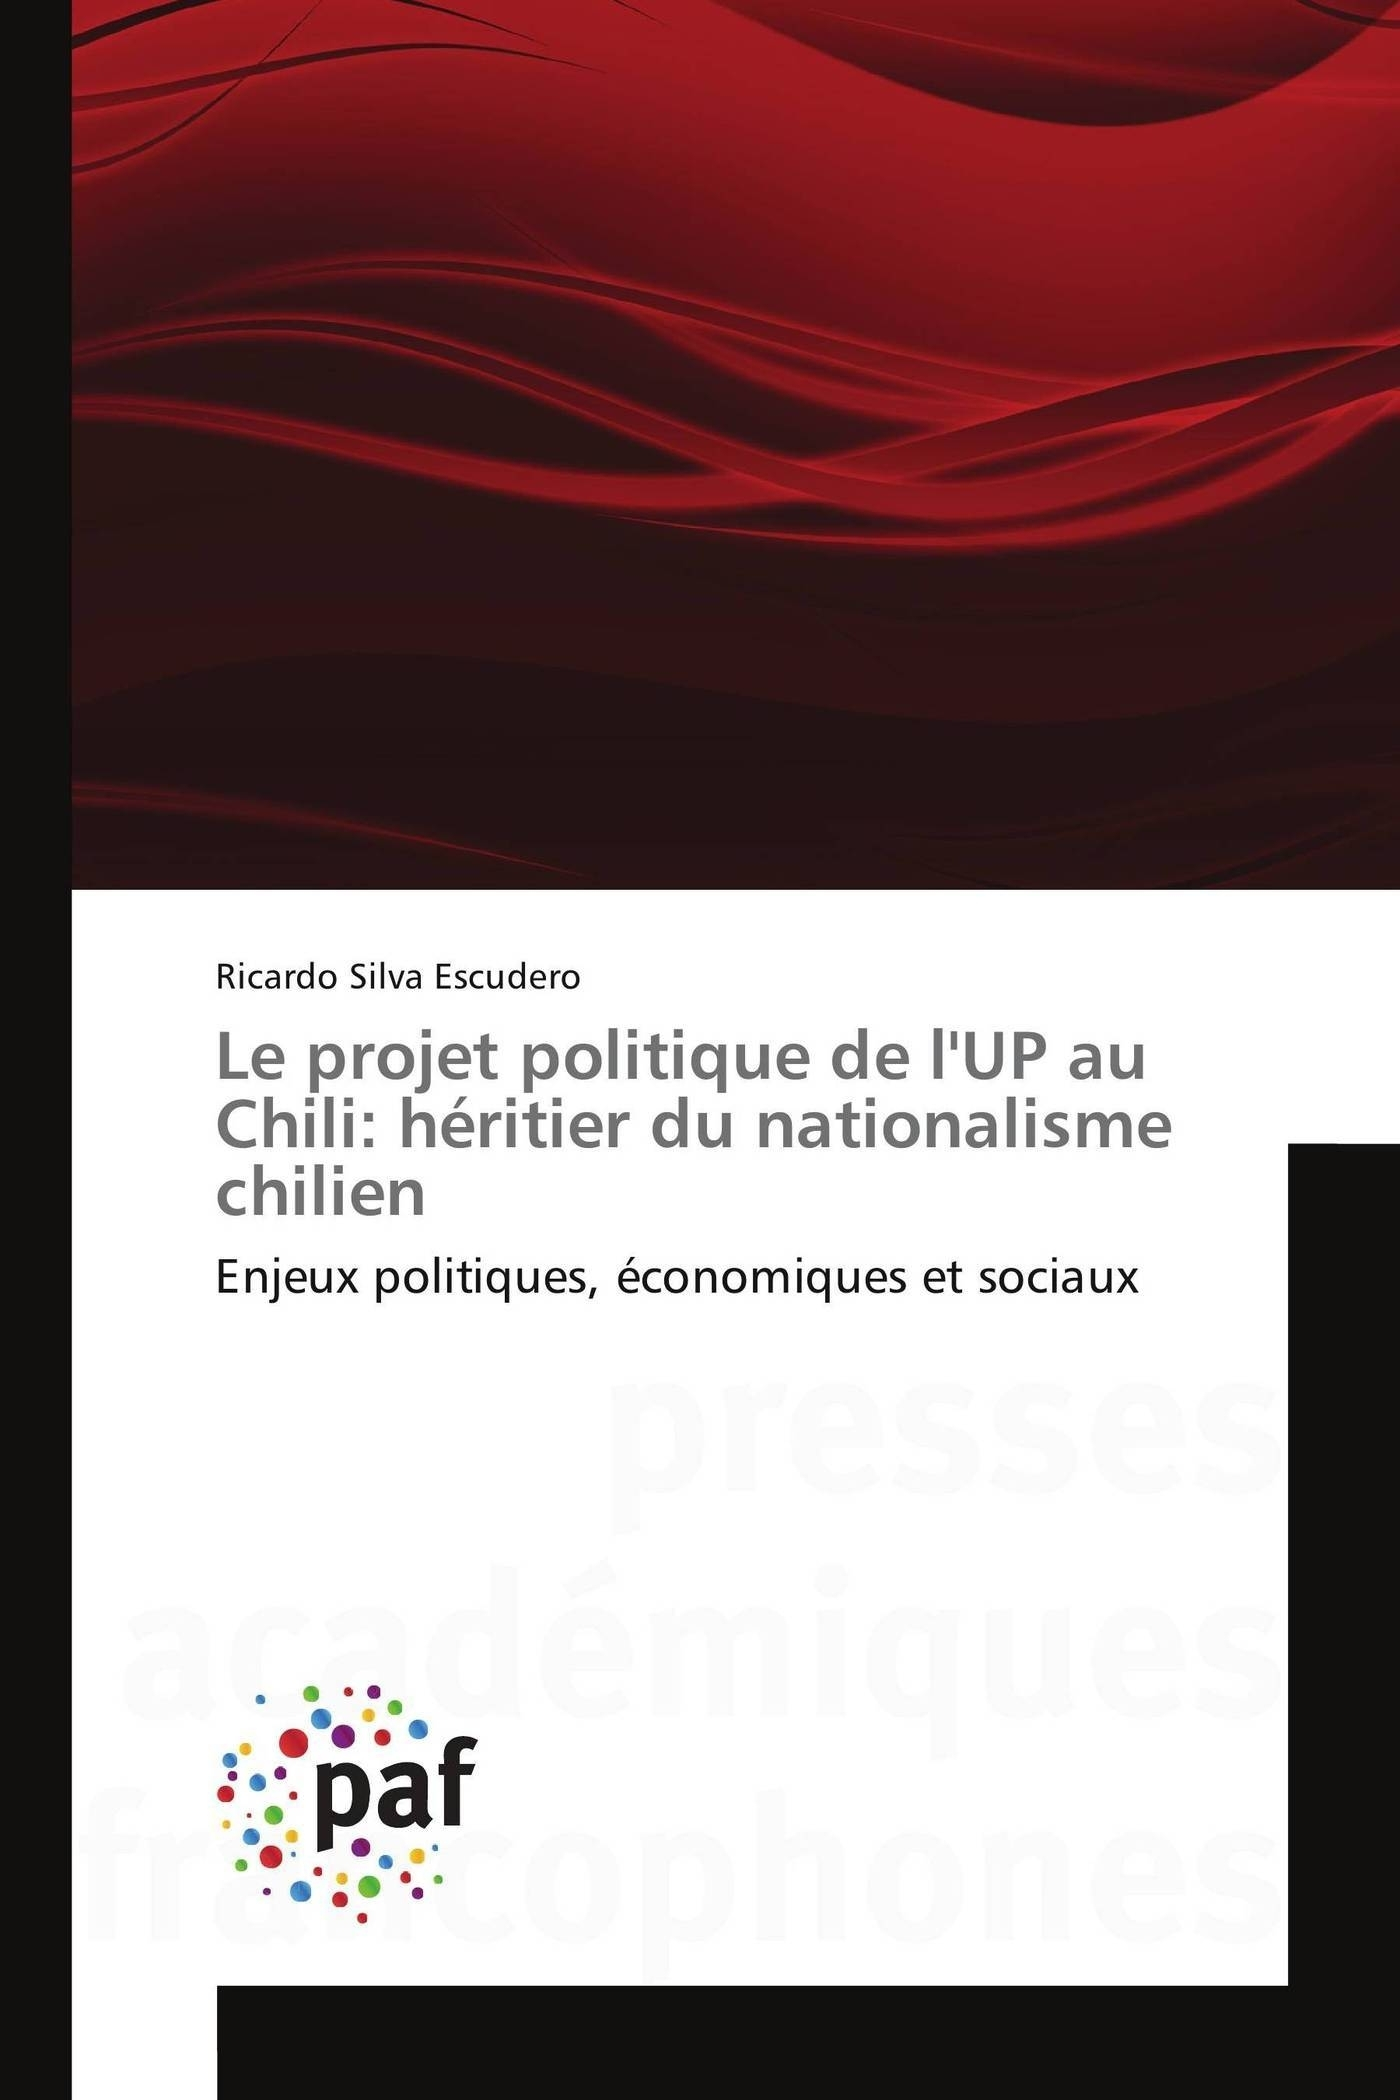 LE PROJET POLITIQUE DE L'UP AU CHILI: HERITIER DU NATIONALISME CHILIEN